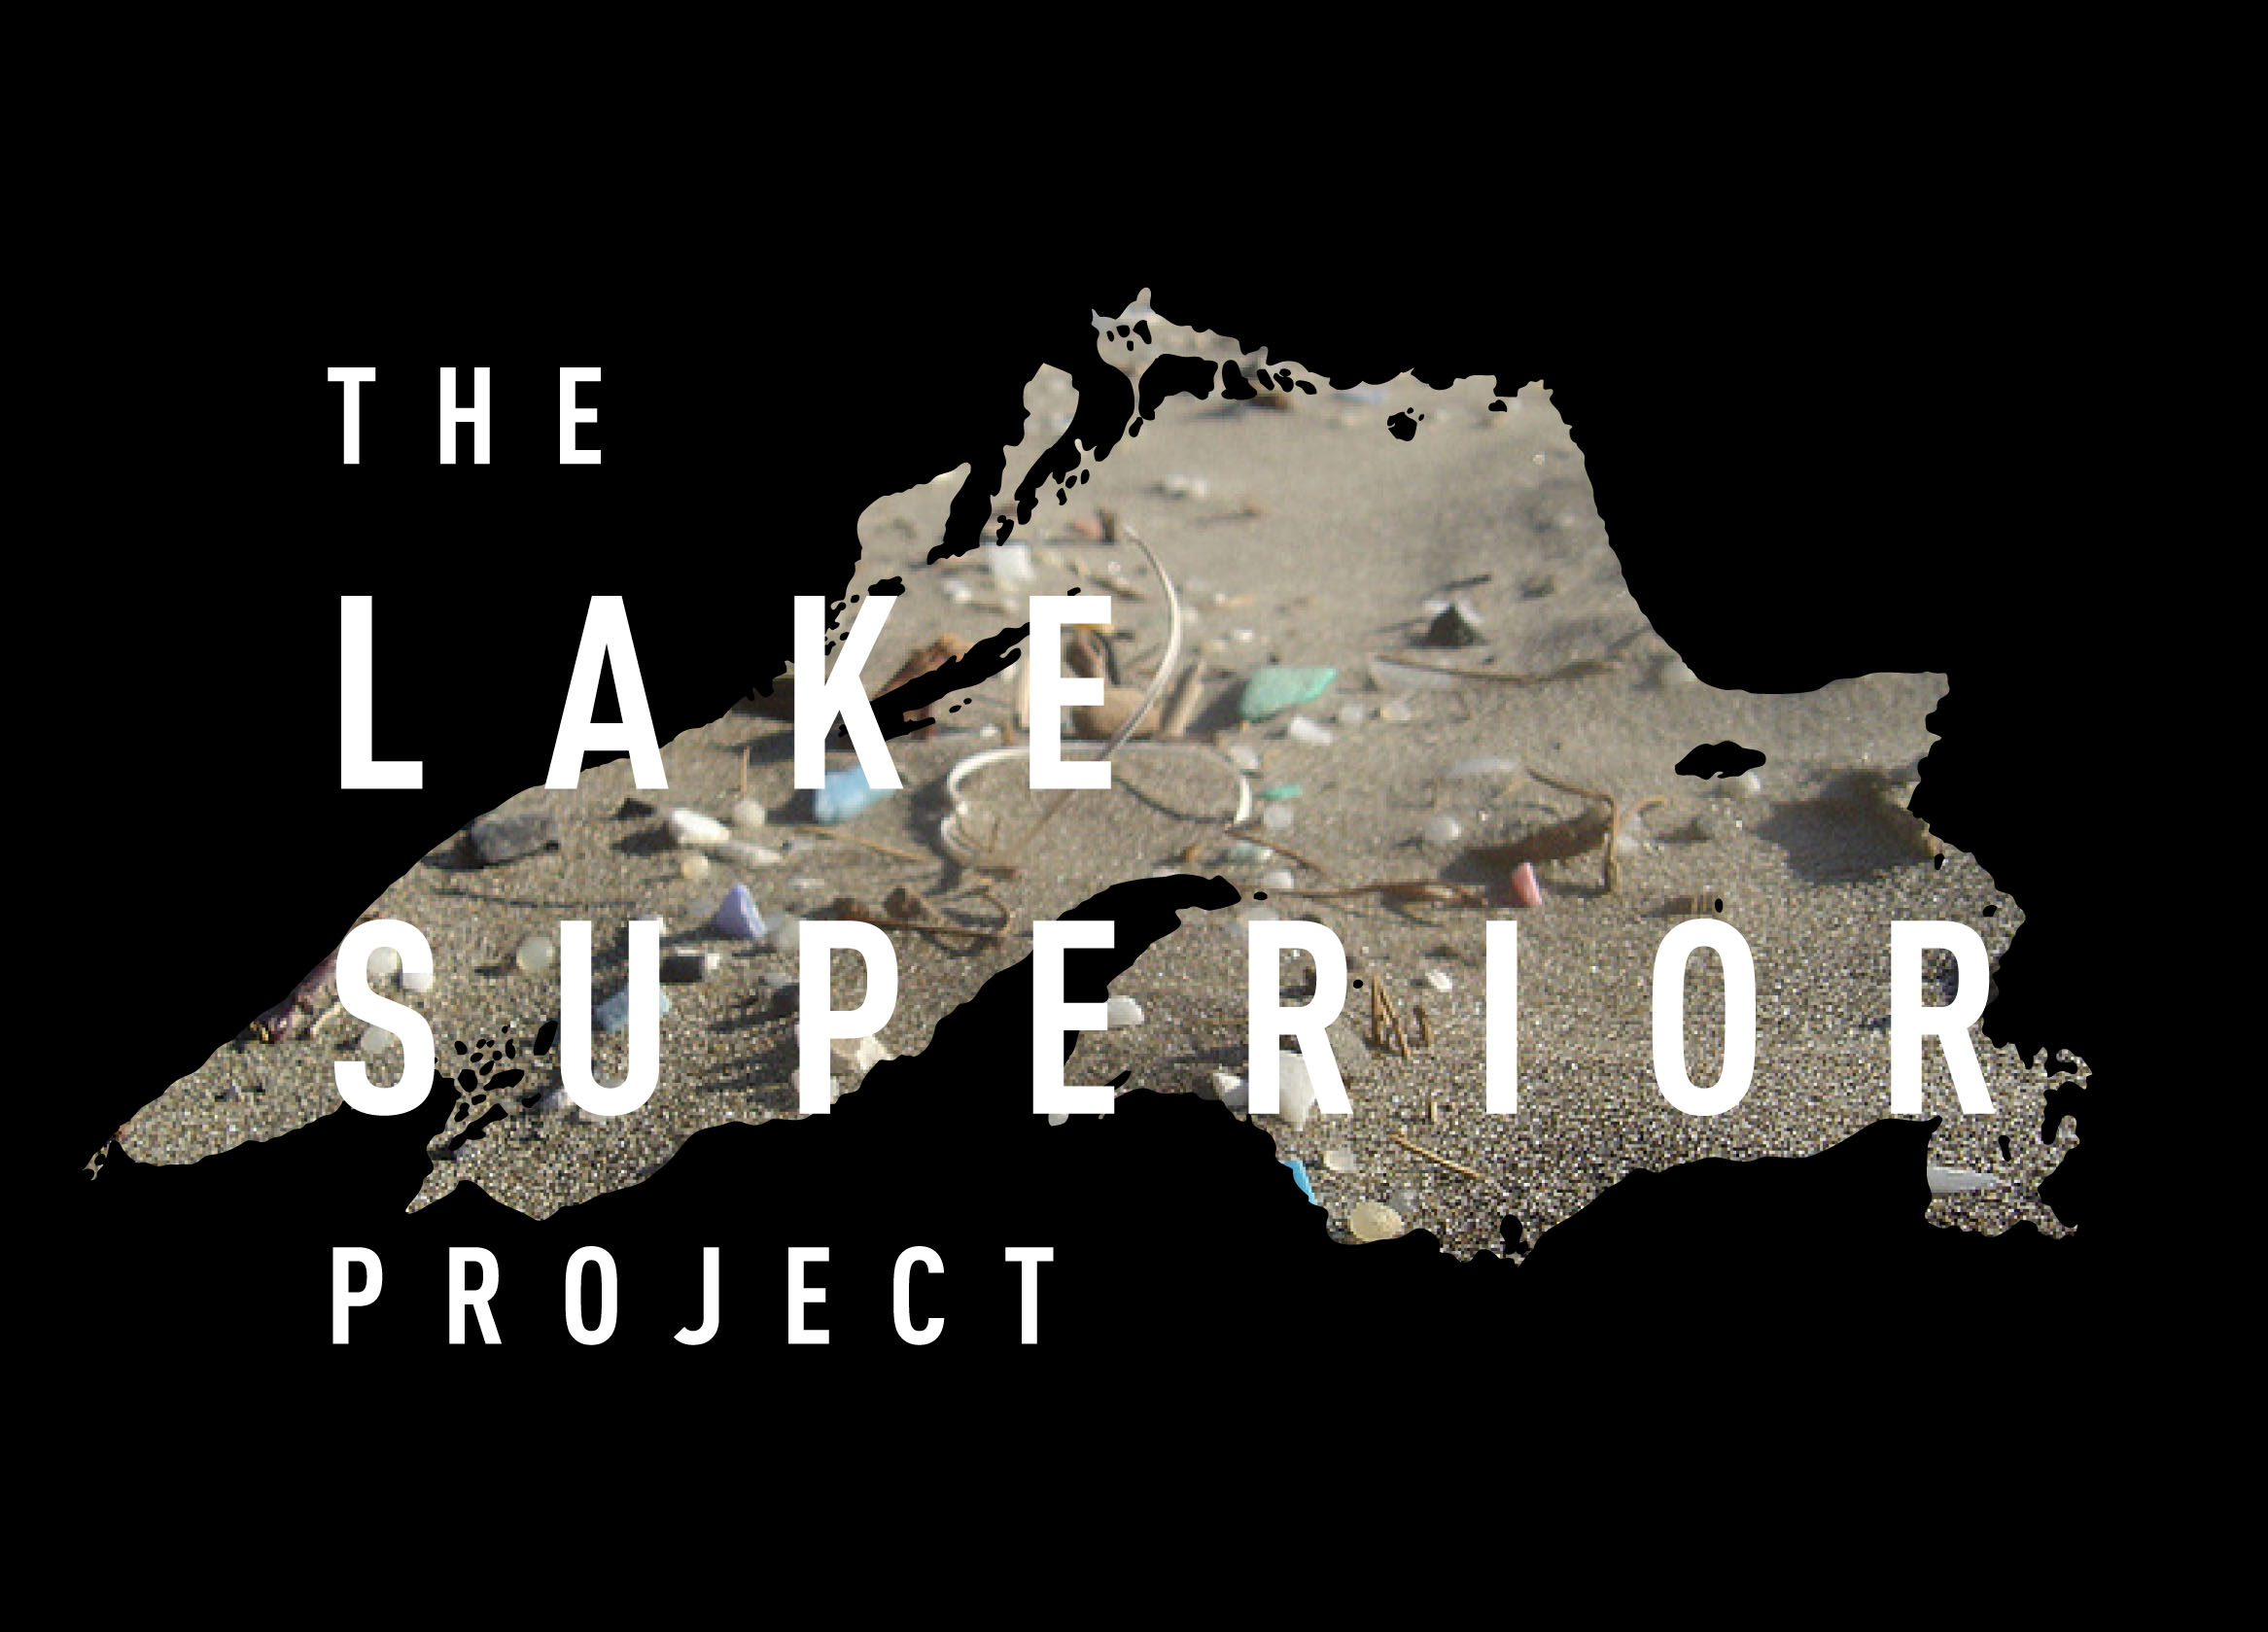 Caption: The Lake Superior Project, Credit: Logo by Lauryl Loberg/Photo by CircleFace via Flickr